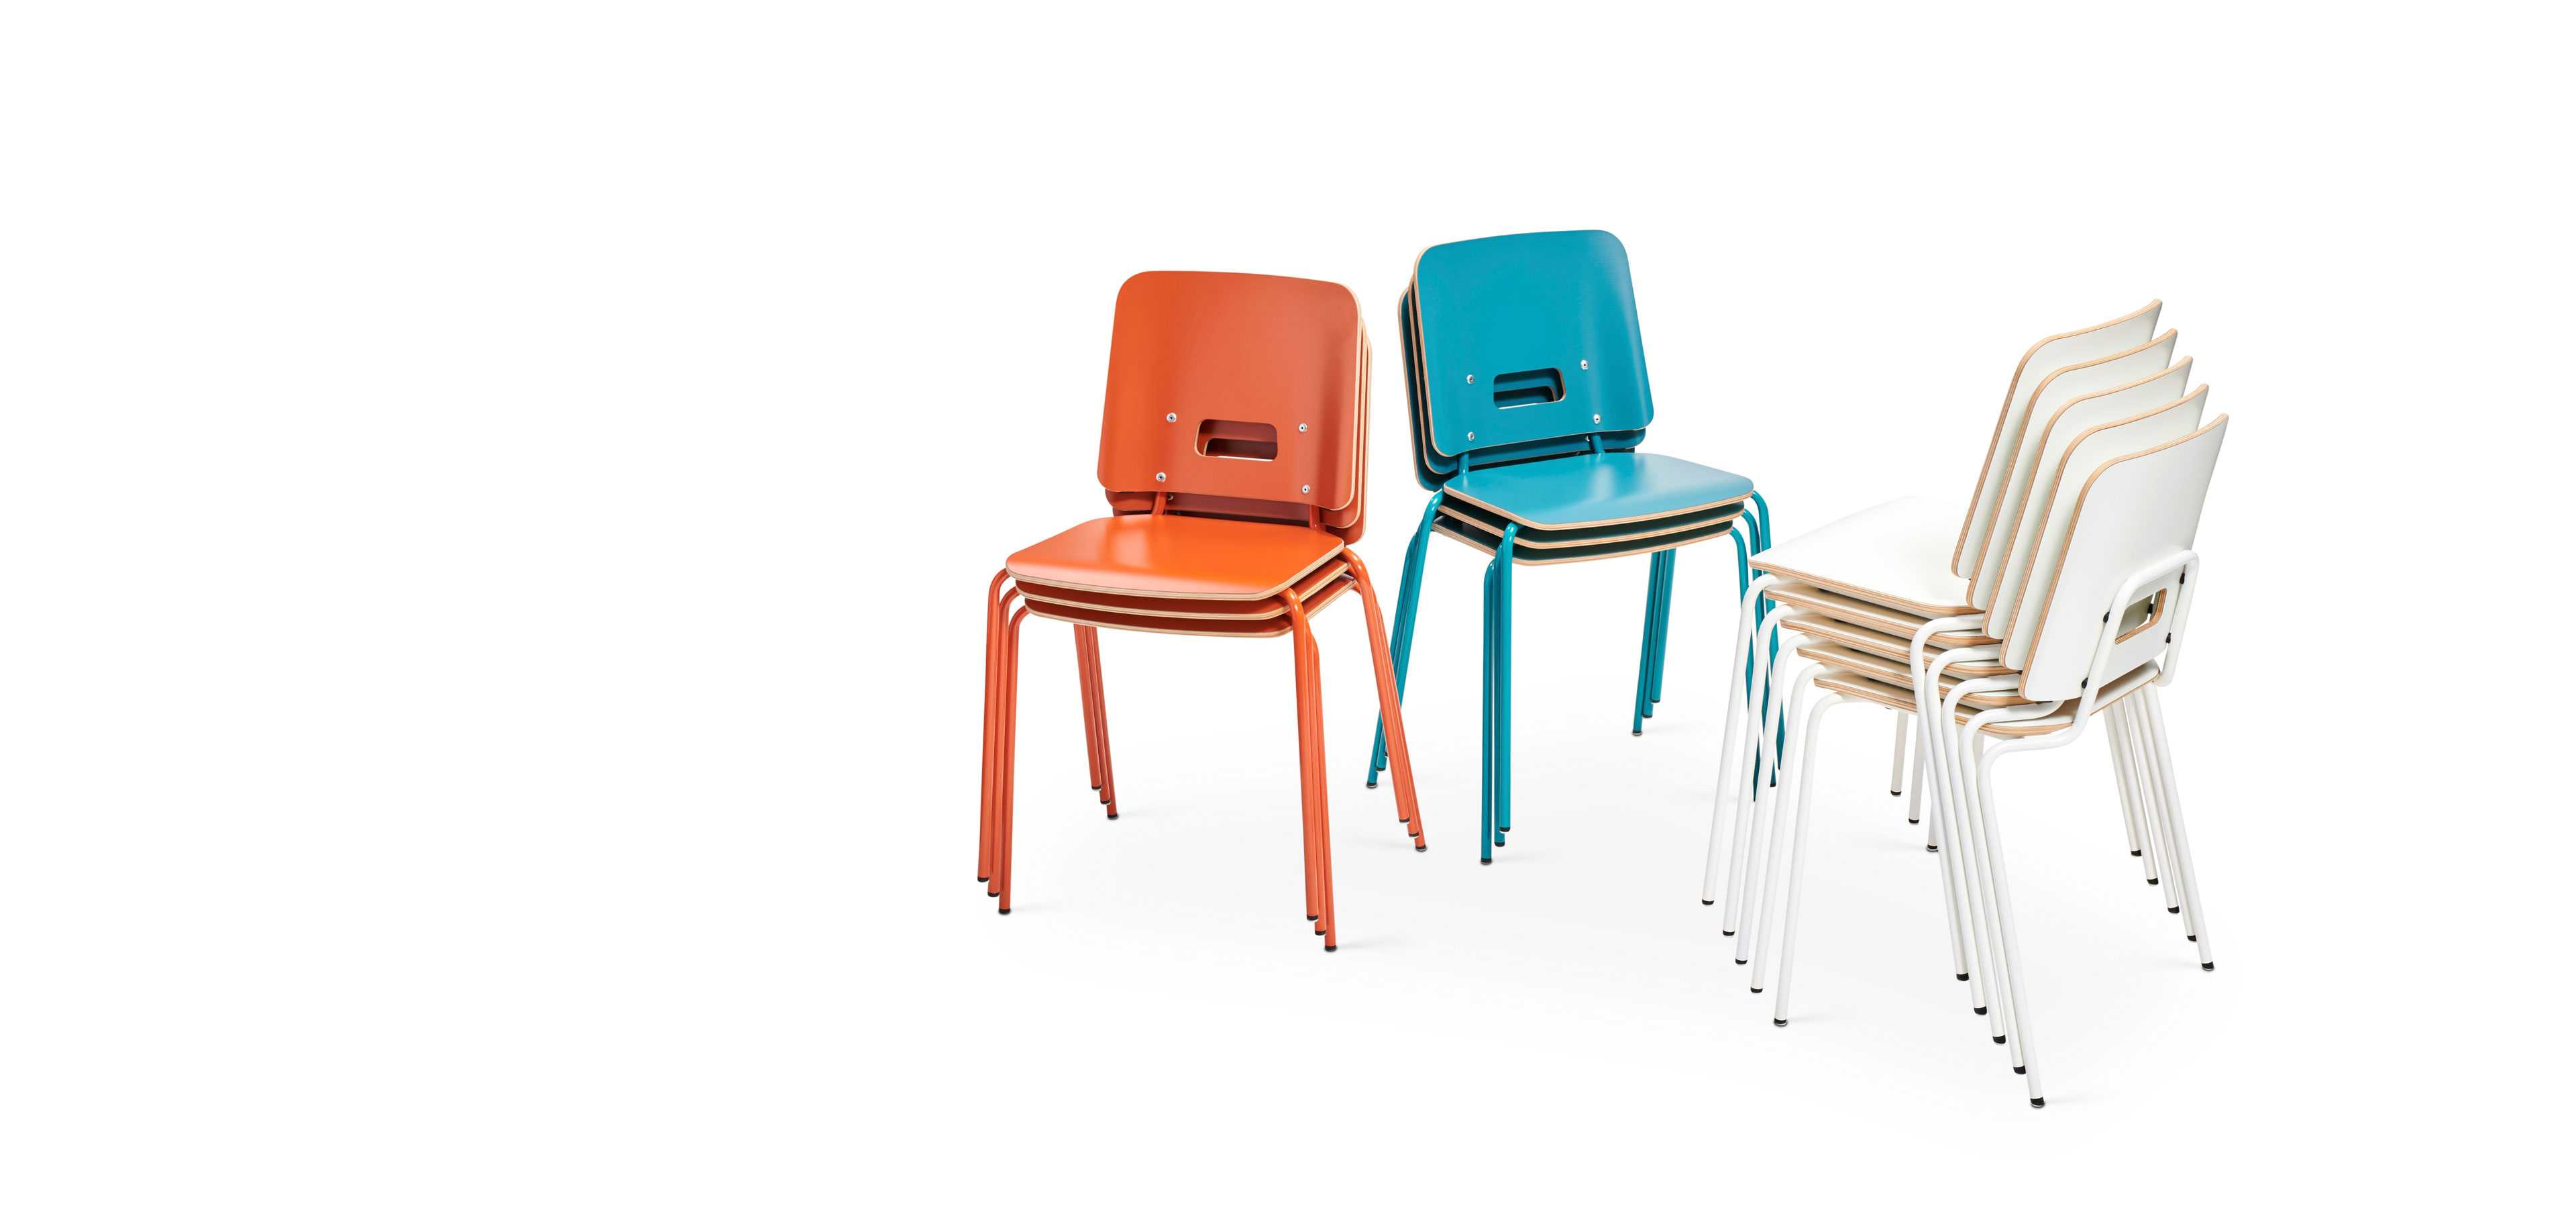 Grip NxT chairs by Martela